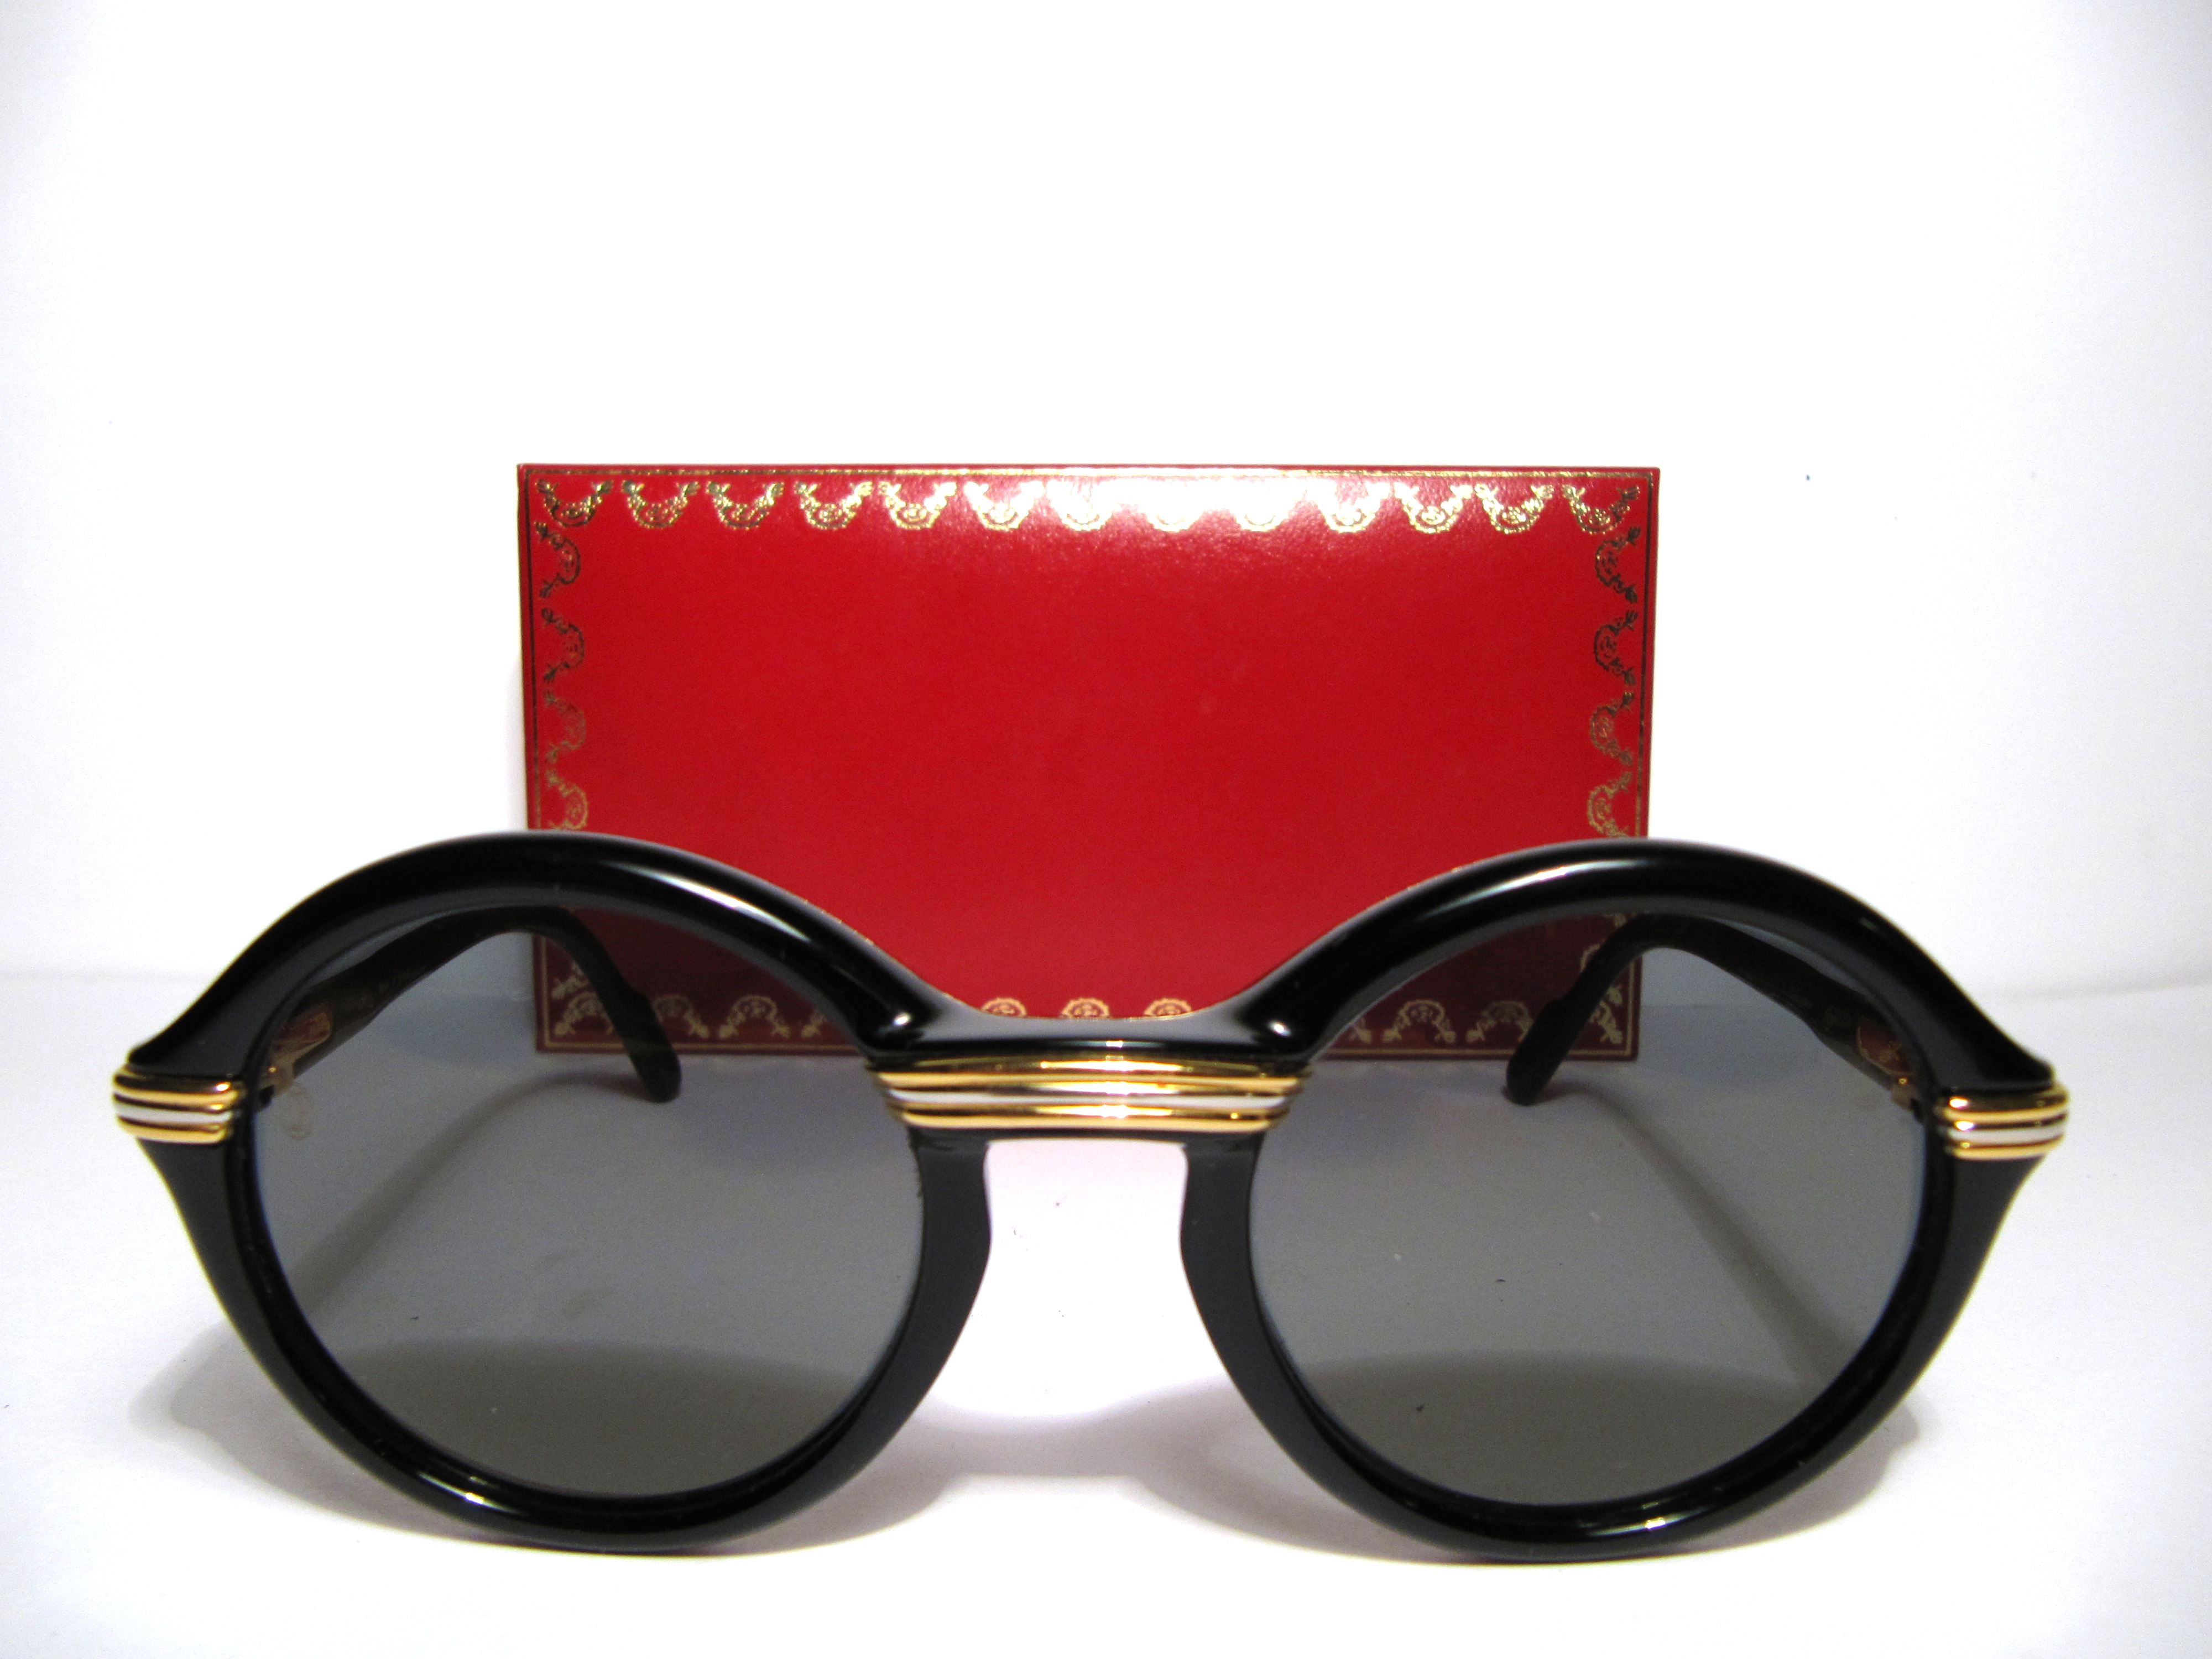 Cartier Gold Frame Sunglasses : Black round Cartier Cabriolet